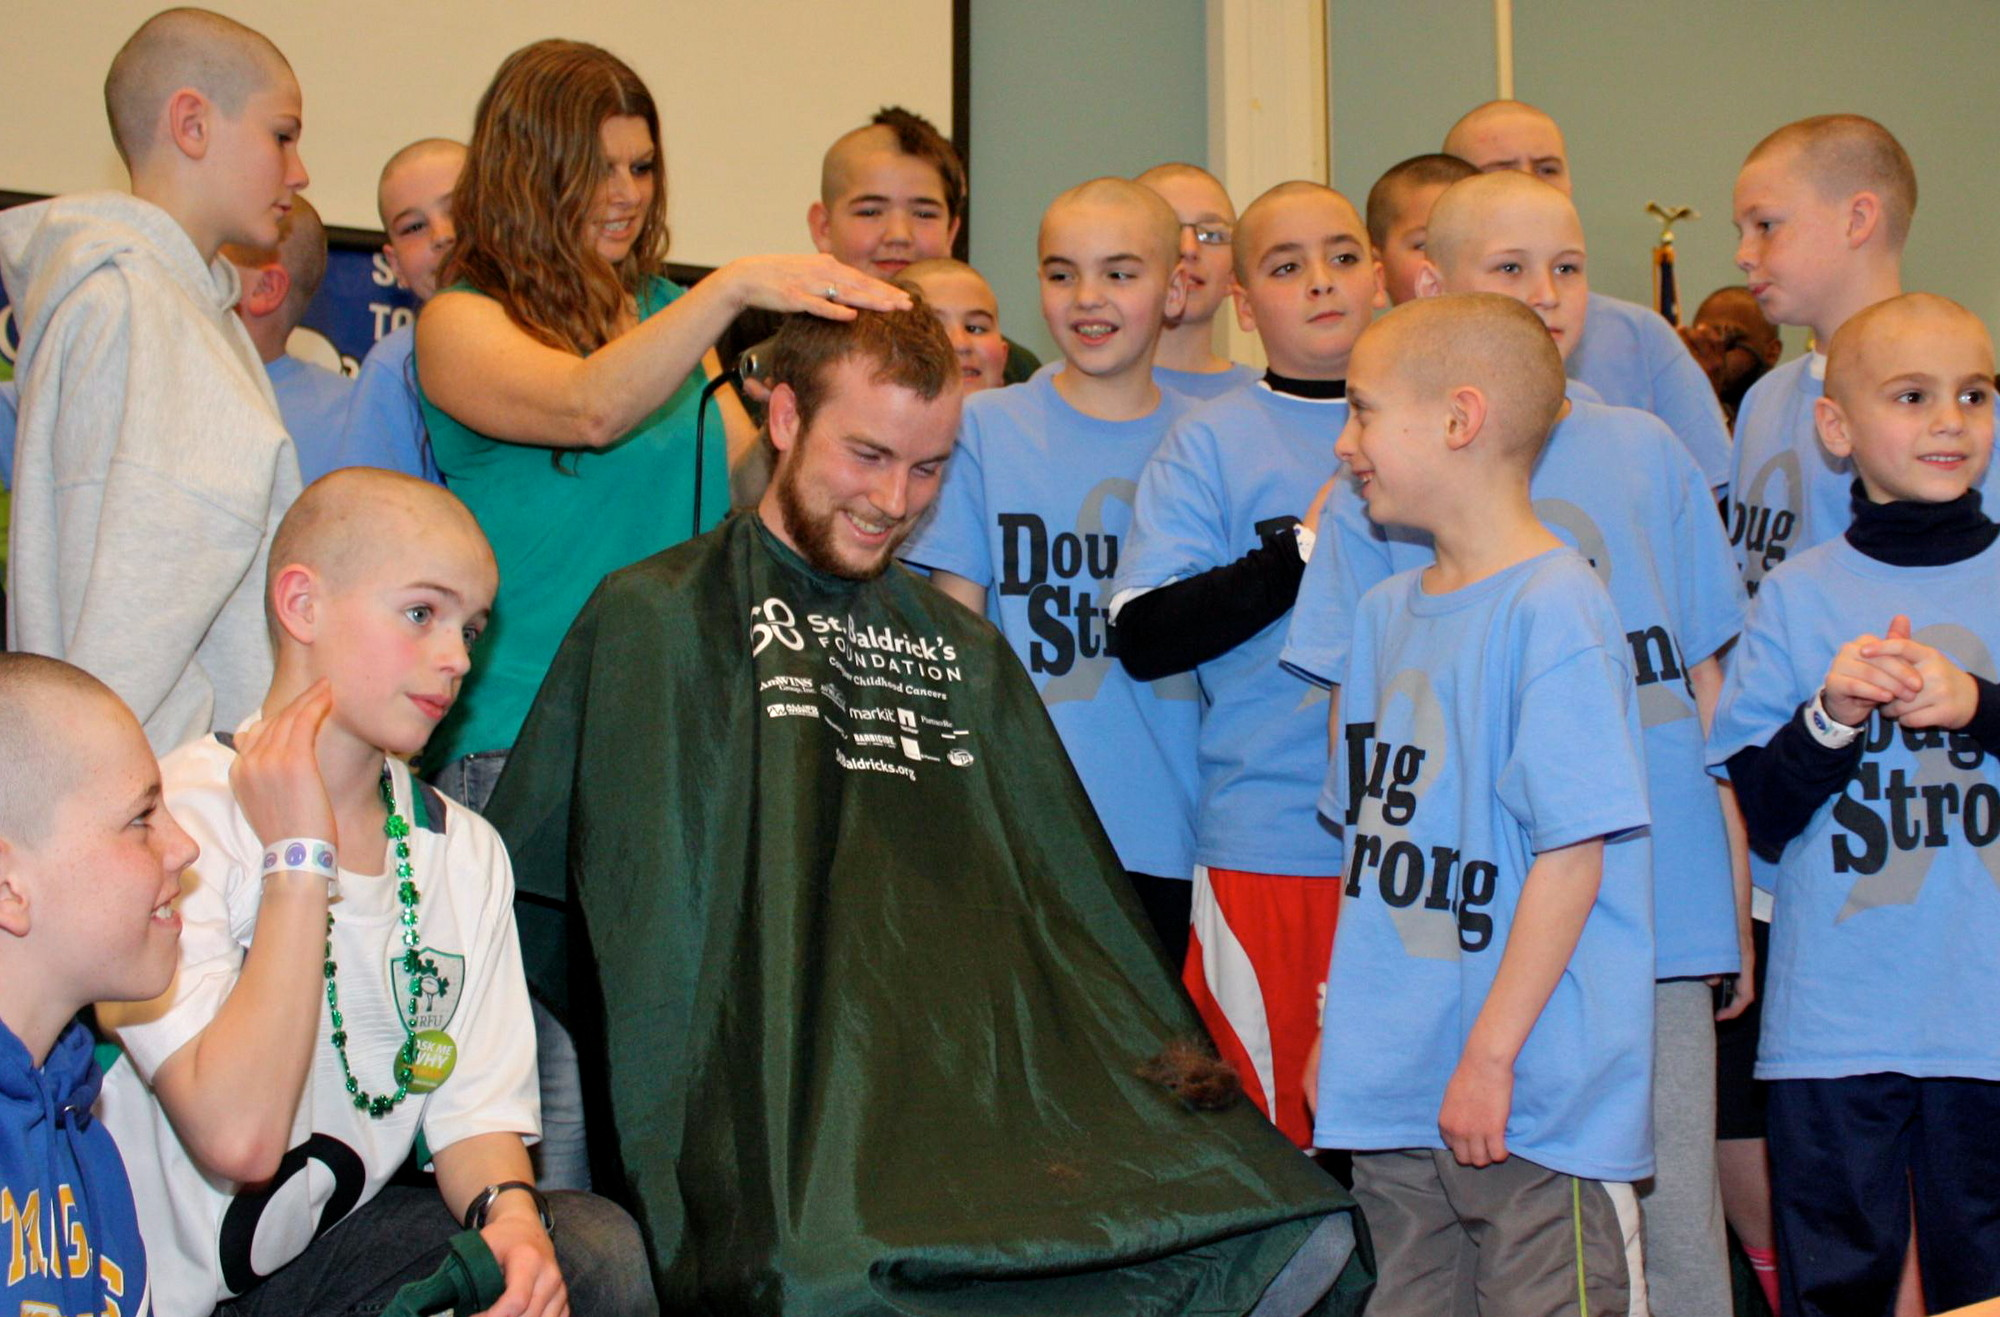 Friends and family of Doug Gonzalez had their heads shaved at the St. Baldrick's Foundation event last month in Rockville Centre. The group raised more that $21,000 for cancer research in Doug's name.